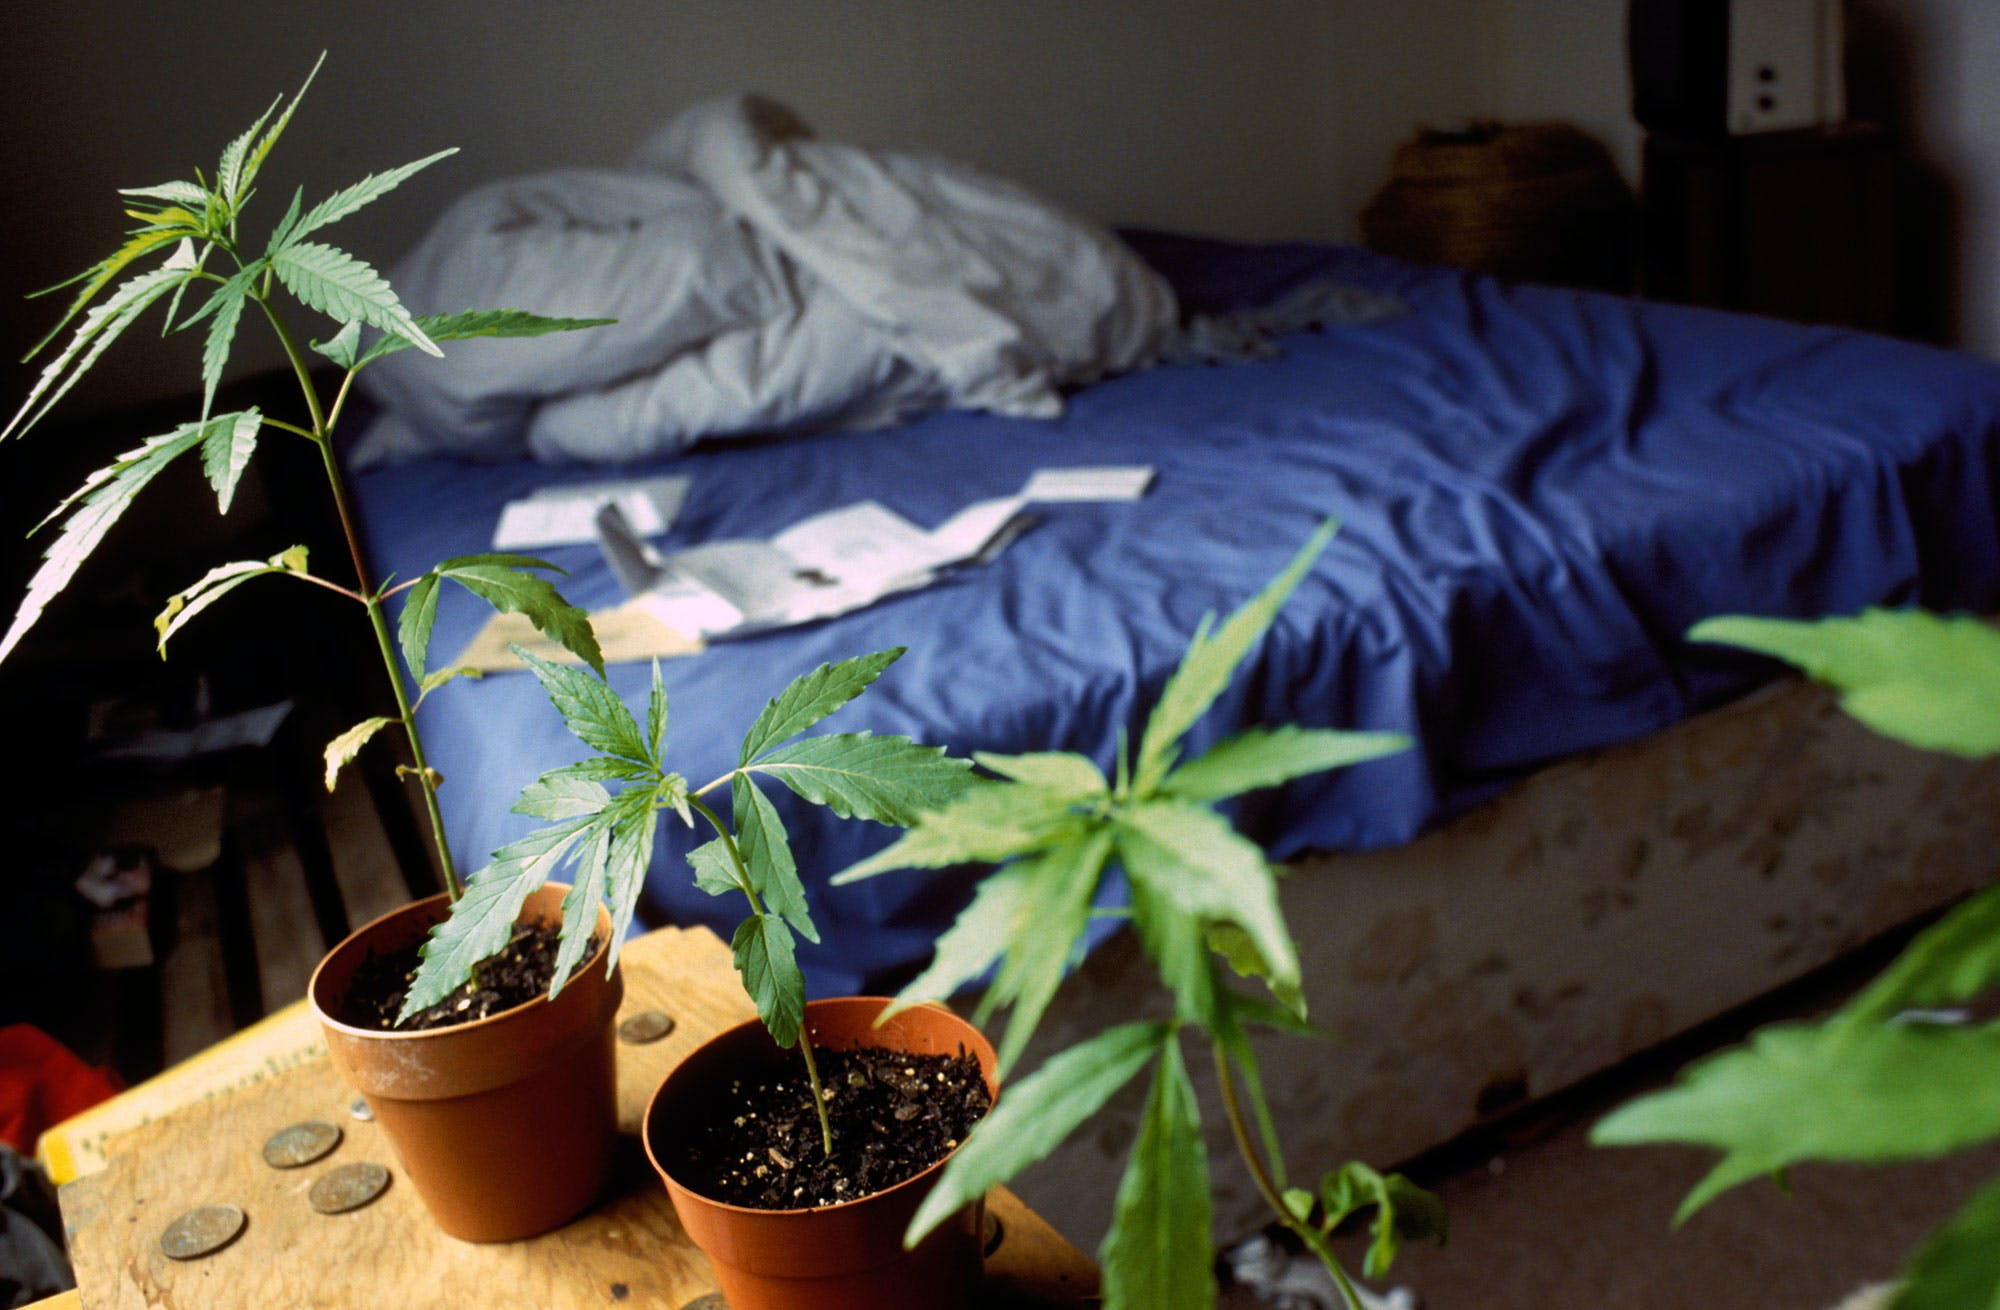 1 Inside the Debate Over Whether Home Growing Should Be Legal Petition To Legalize Cannabis Launched In New Hampshire